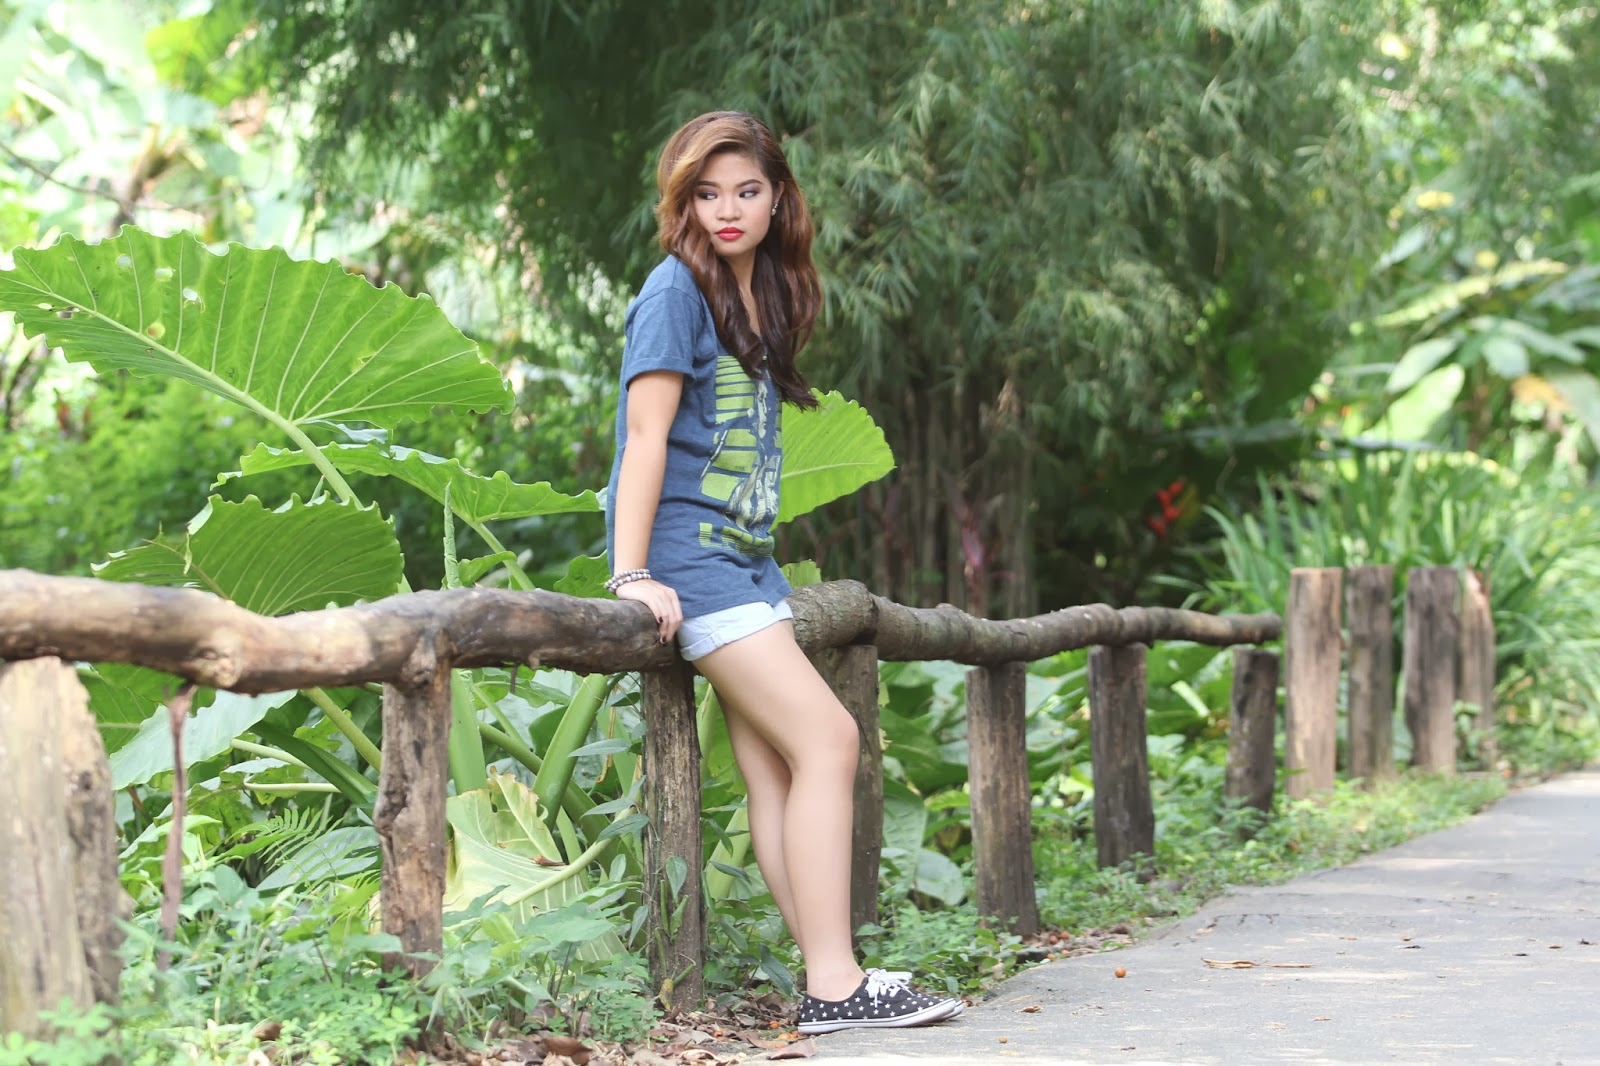 Lizette's Pre Debut Pictorial - pic15